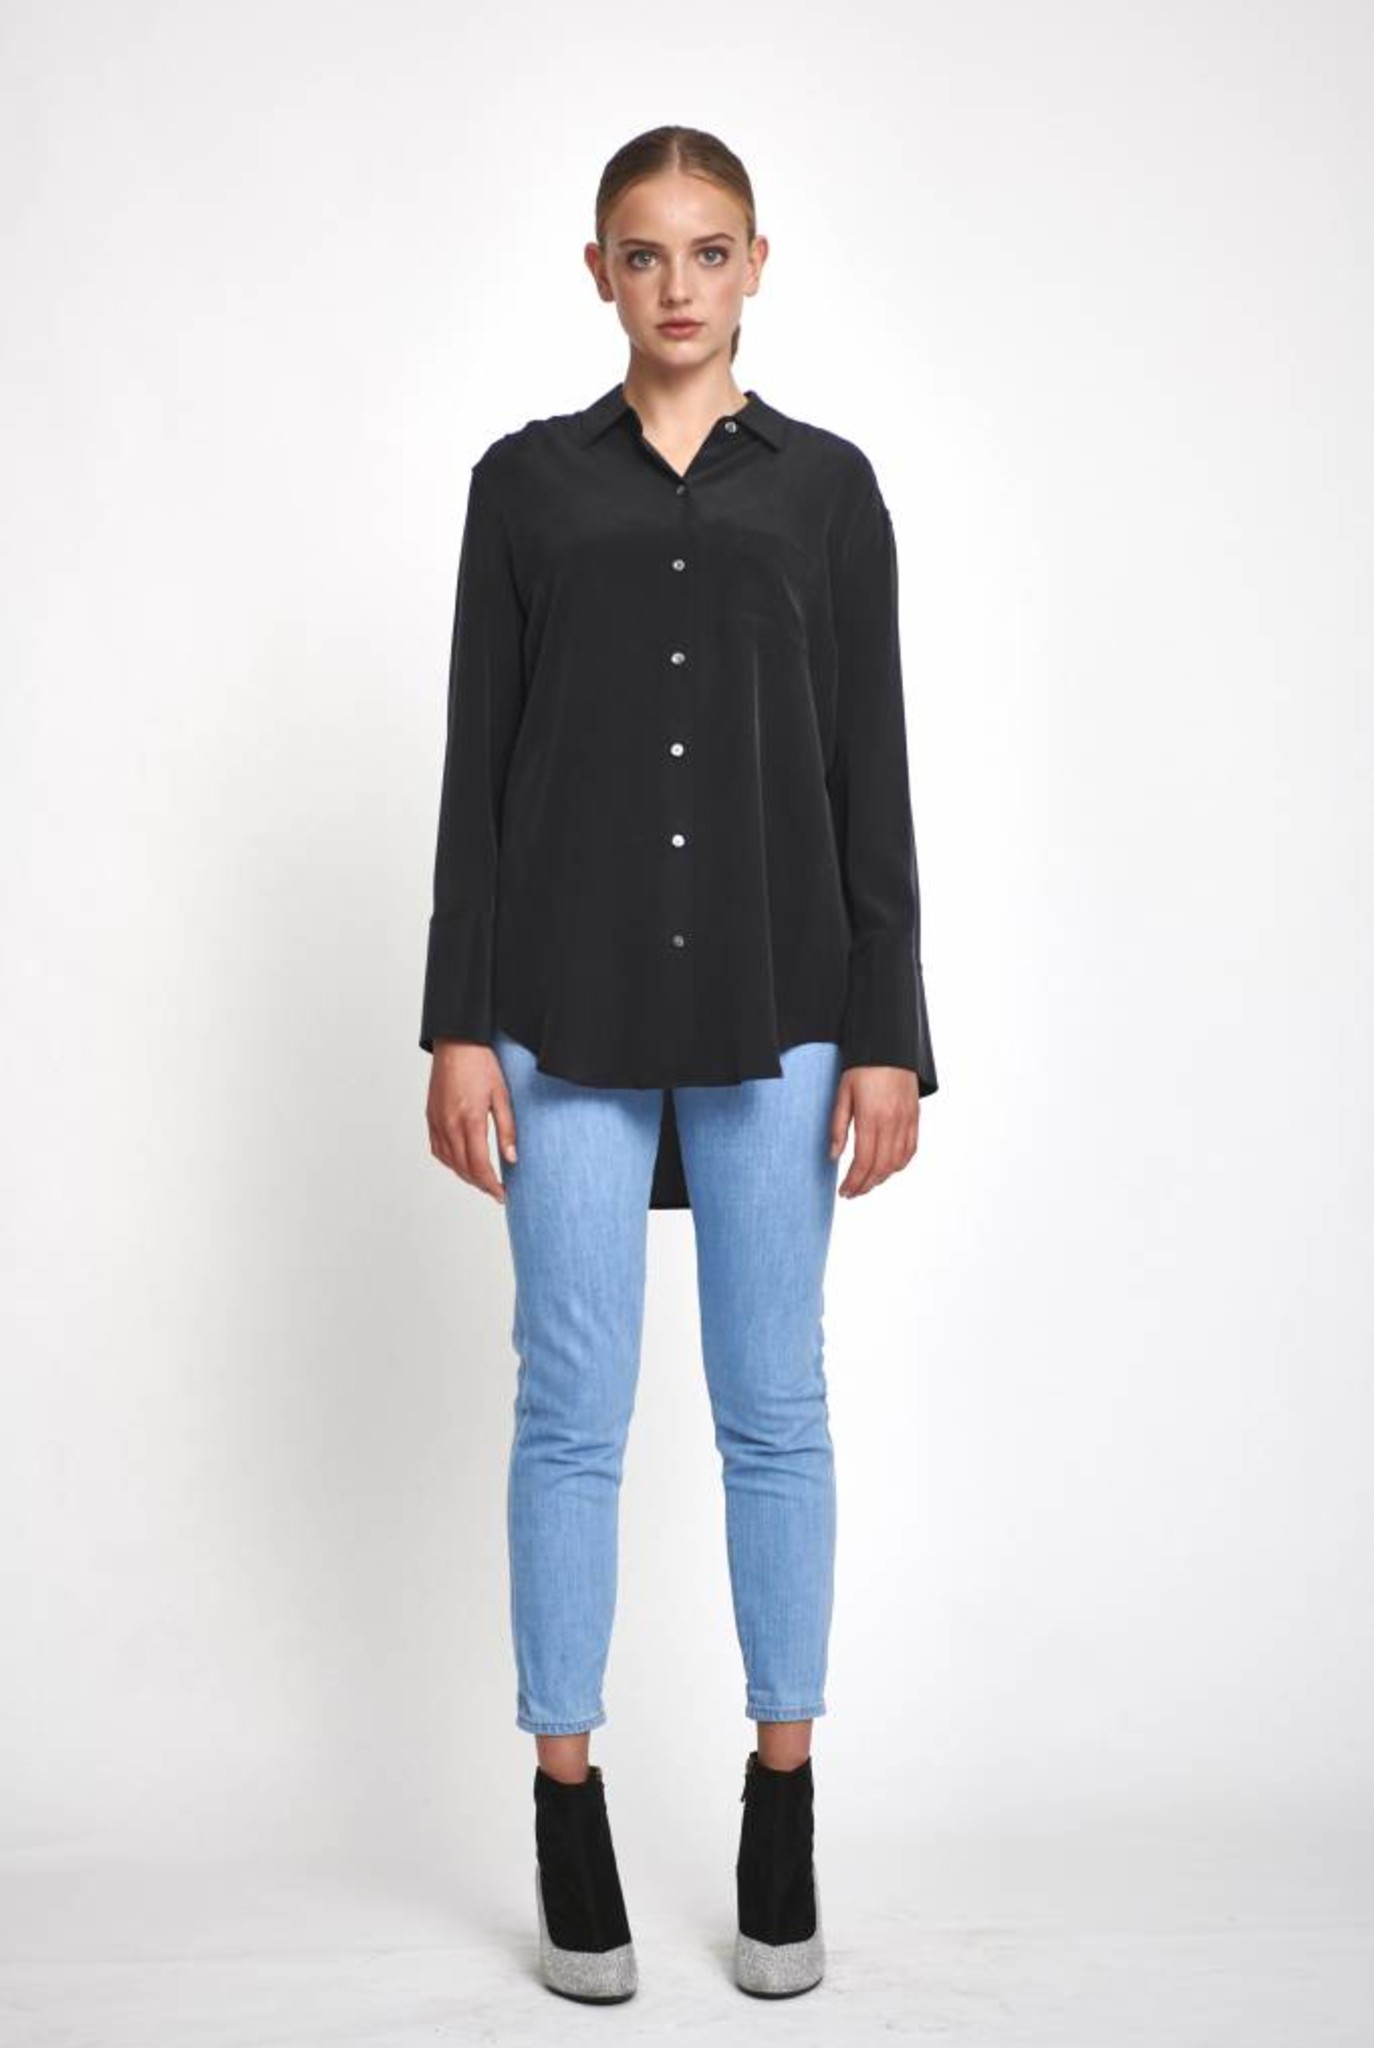 Coco shirt true black